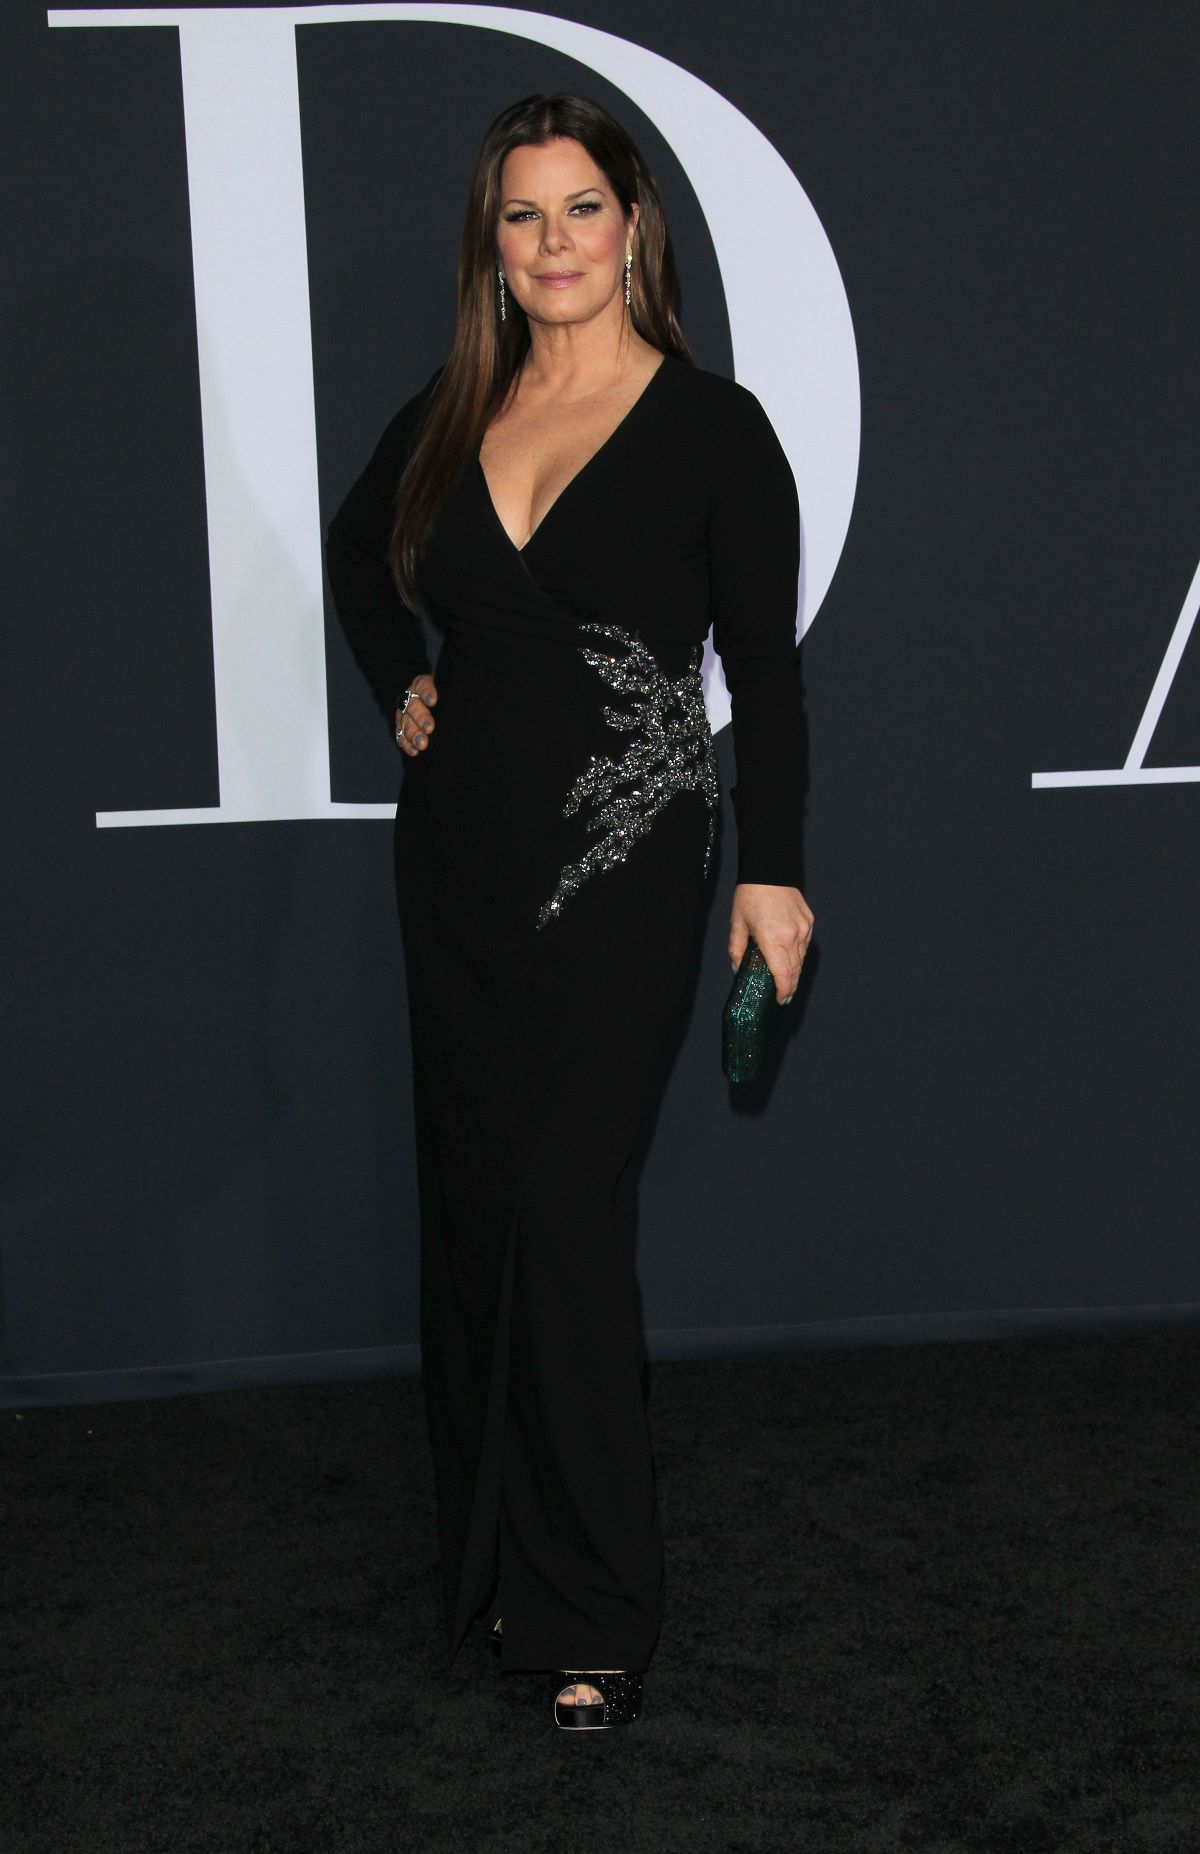 marcia-gay-harden-at-fifty-shades-darker-premiere-in-los-angeles-02-02-2017_3.jpg